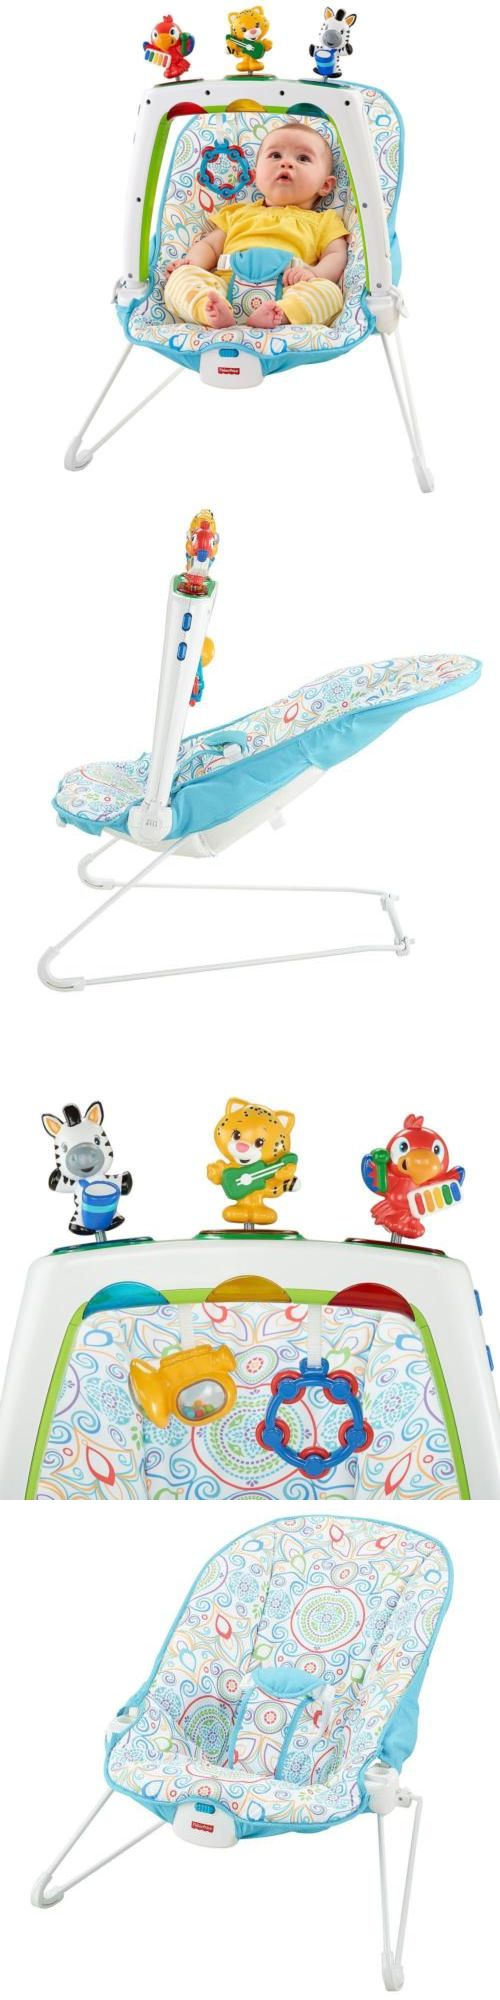 53cdc55f0 Baby Jumping Exercisers 117032  Fisher-Price Musical Friends Bouncer ...